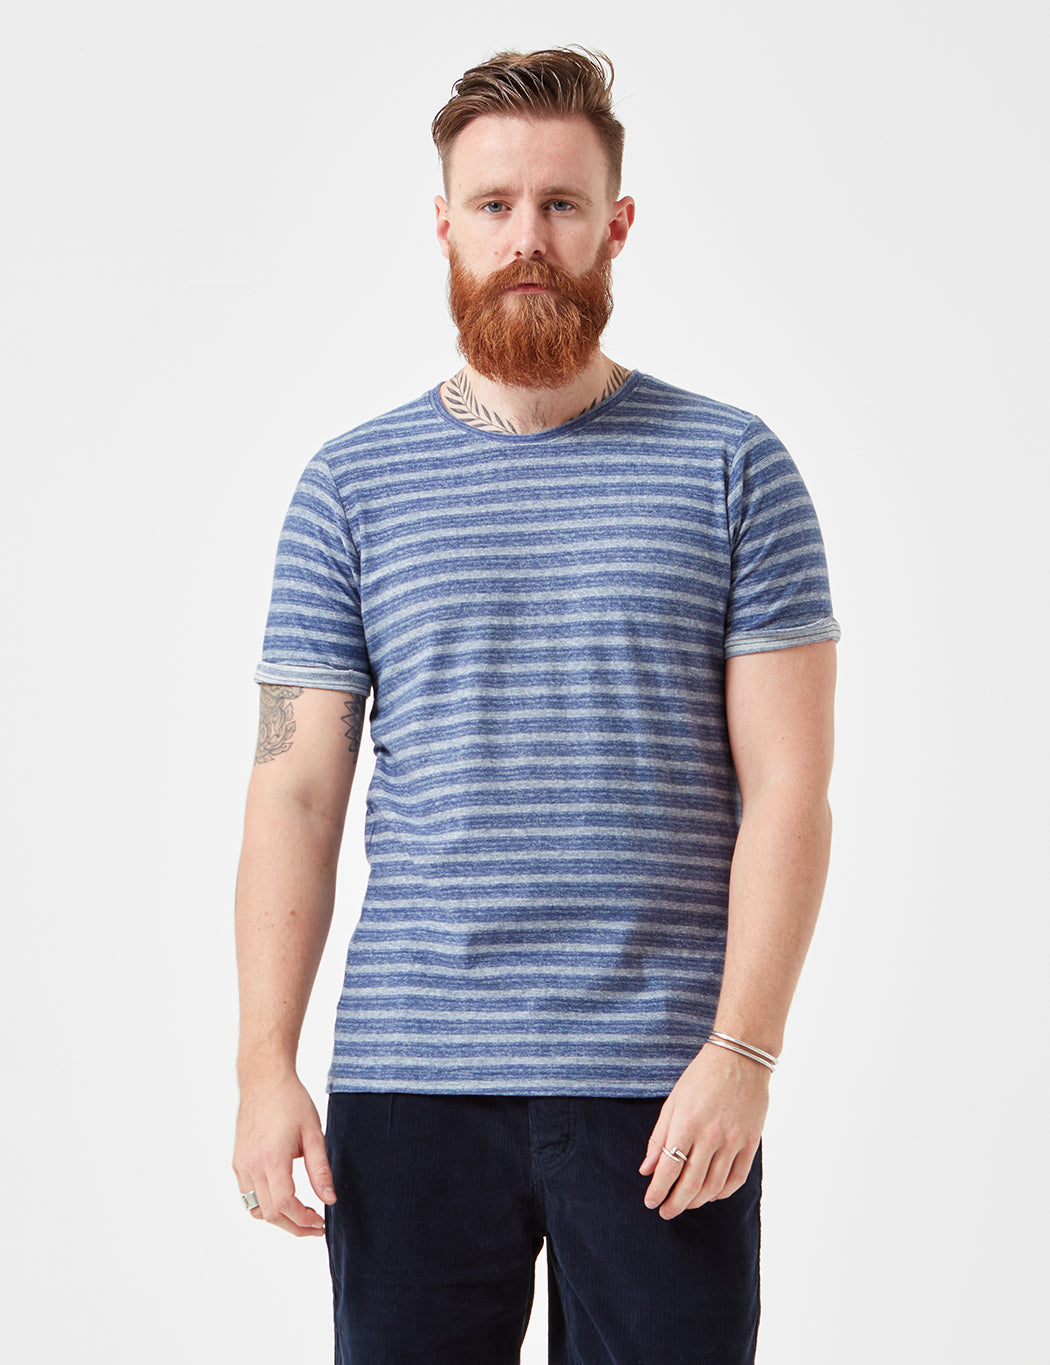 Suit Bobby Jaquard Stripe T-Shirt - Indigo Blue | URBAN EXCESS.